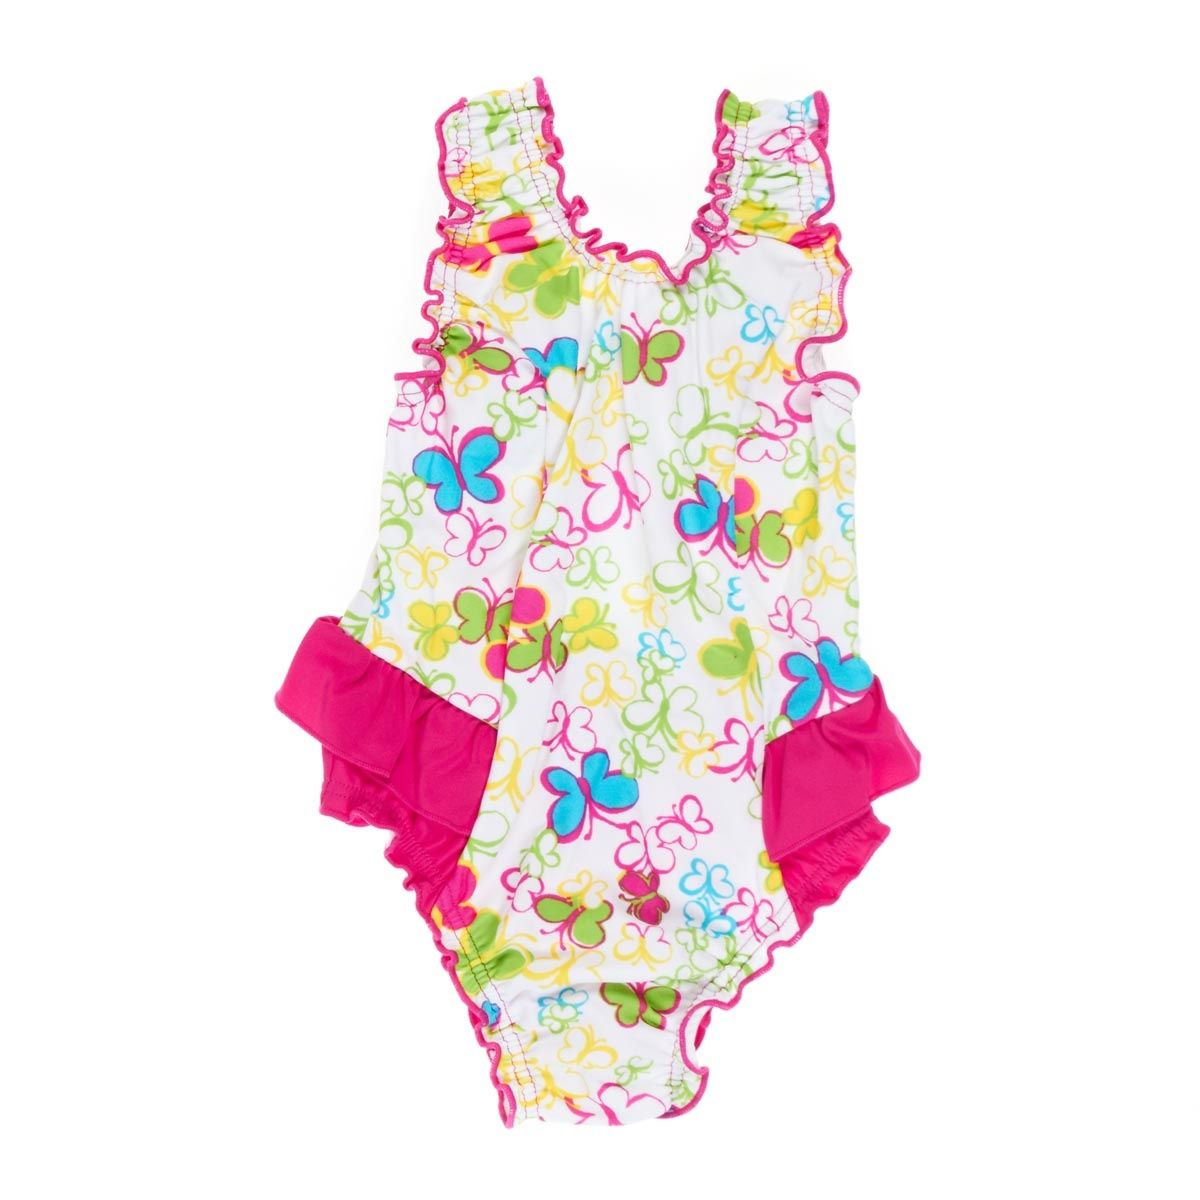 Cute Swim Suits | Topshop Swimwear | Frilly Swimsuit